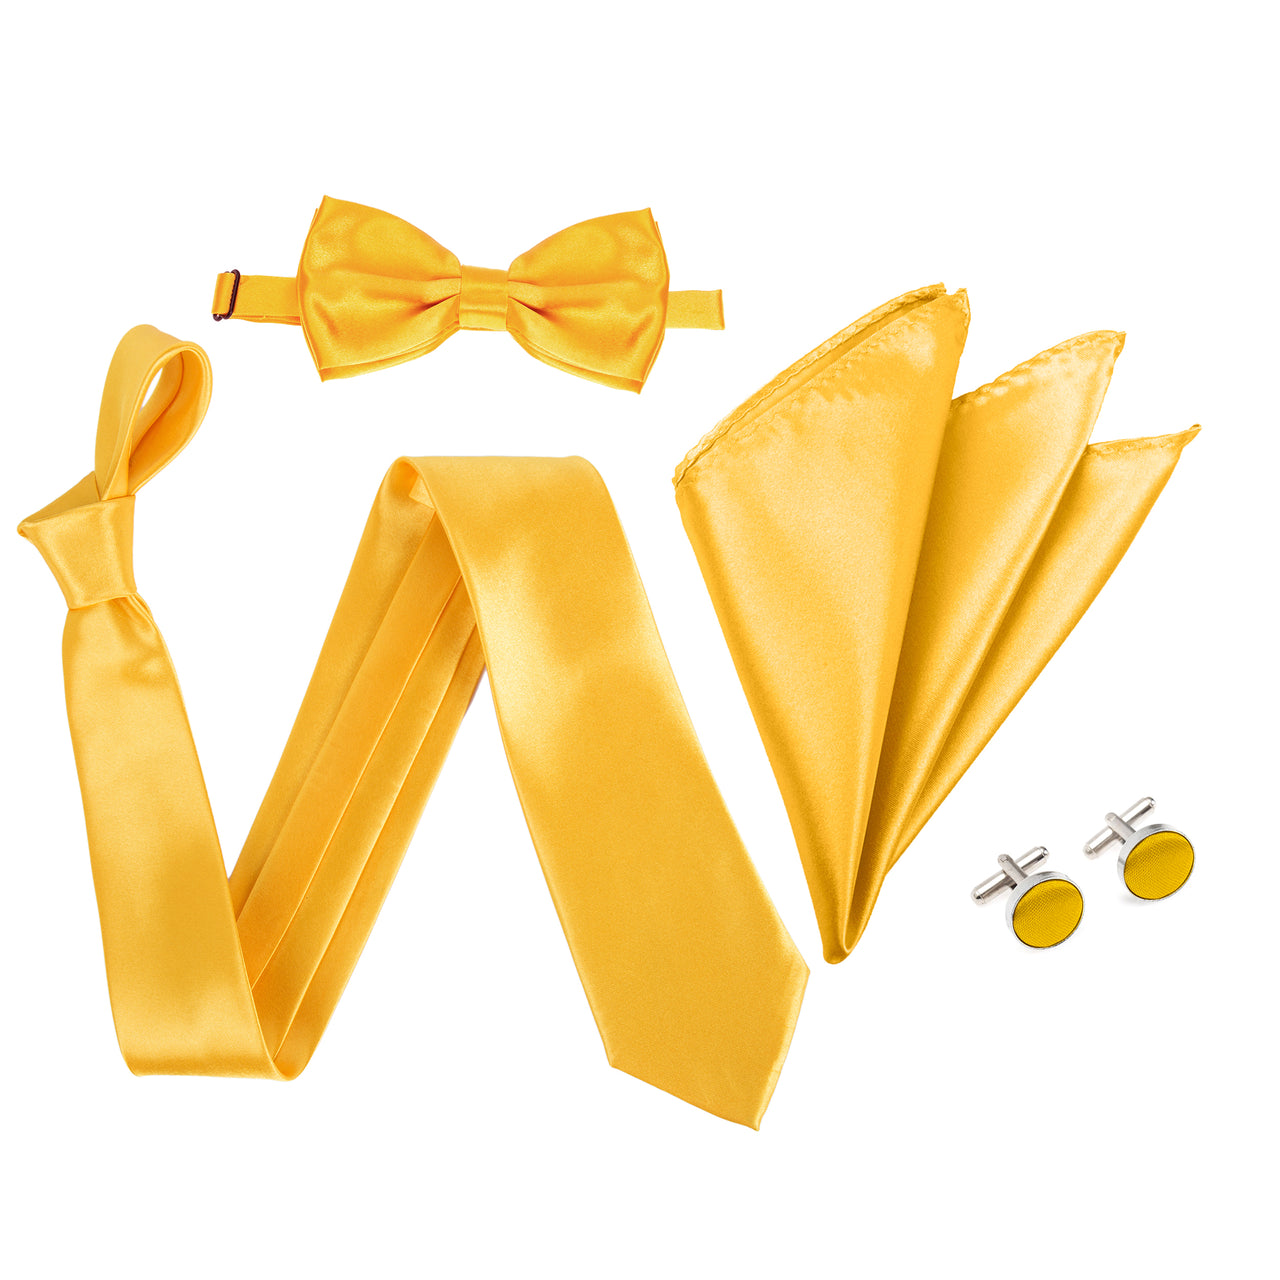 "4pc Tie Set: Wide 3"" Tie, Bow Tie, Handkerchief & Cufflinks - Golden Yellow"